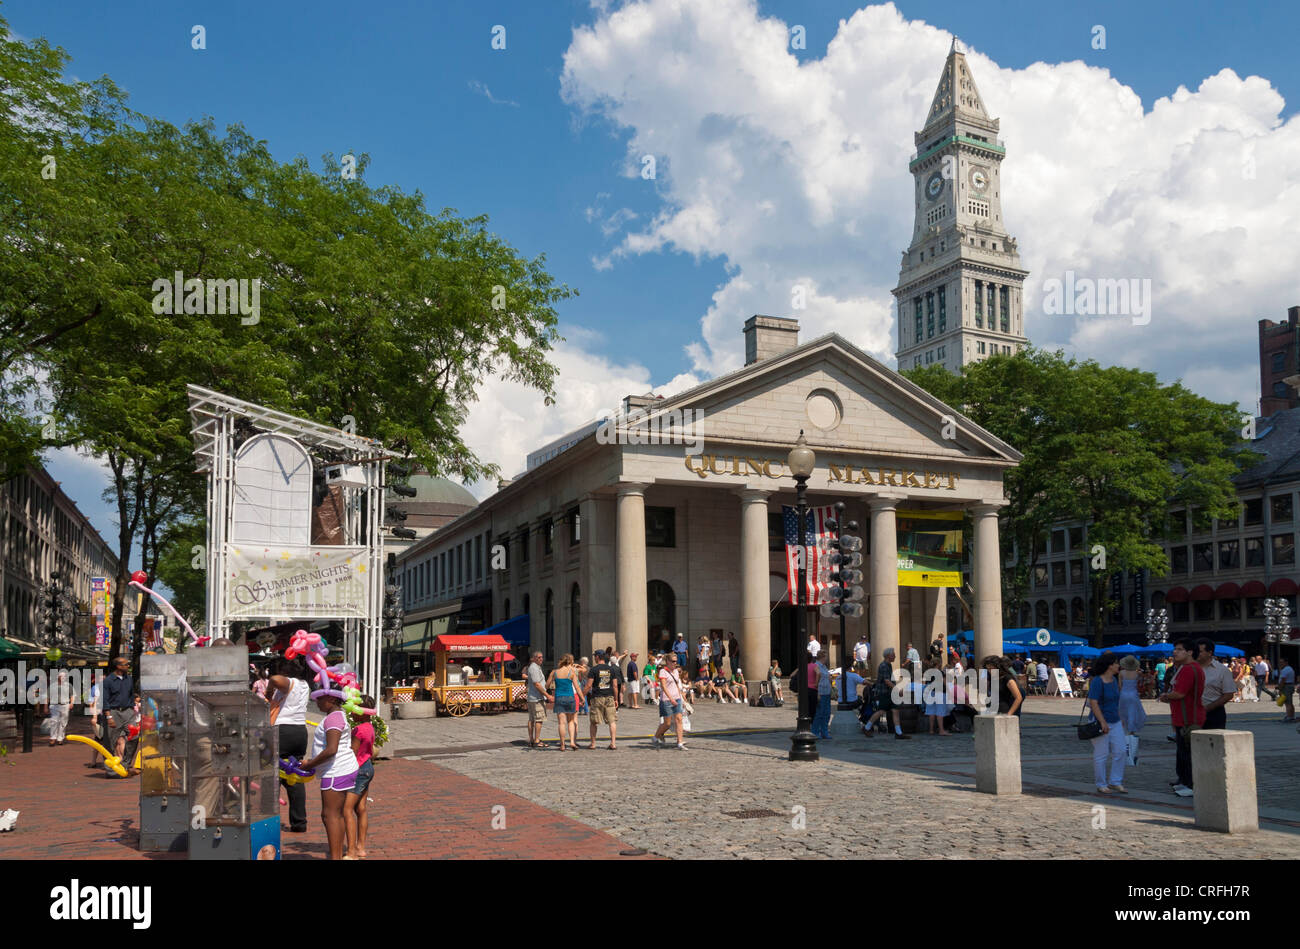 Mercado de Quincy, Boston, Massachusetts, EE.UU. Imagen De Stock